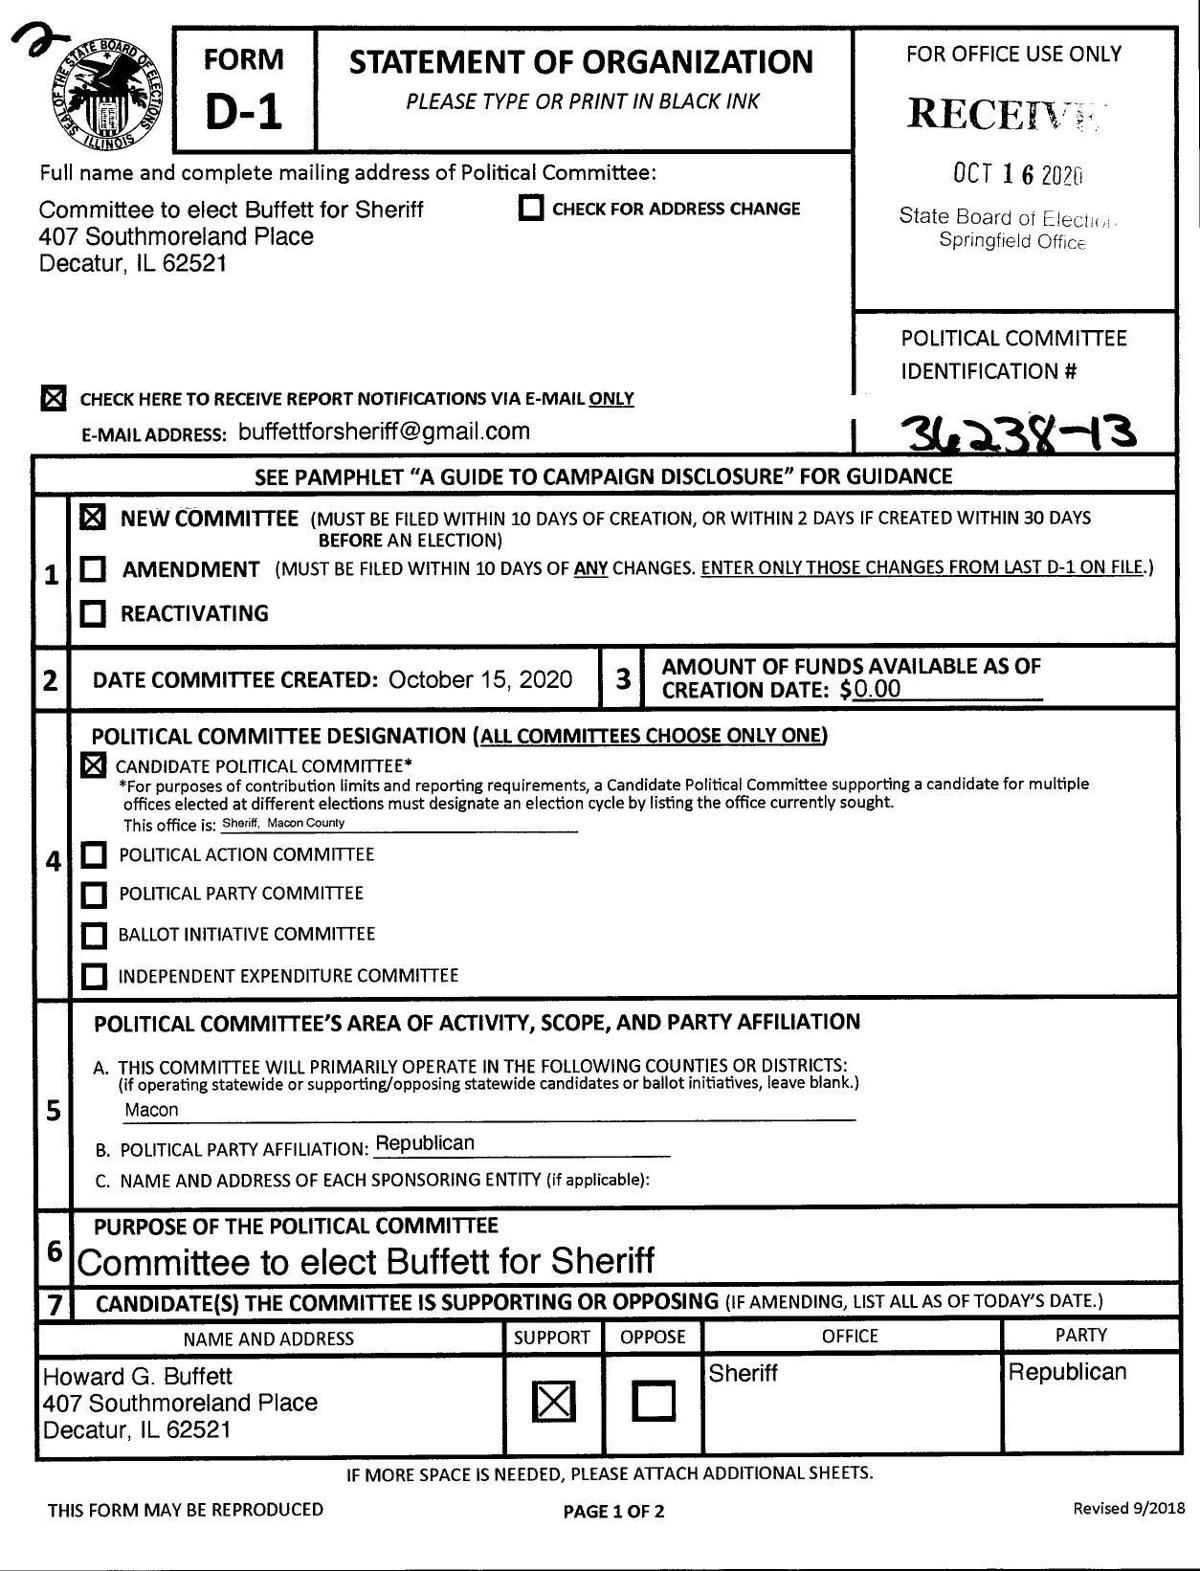 View the Committee to elect Buffett for Sheriff paperwork